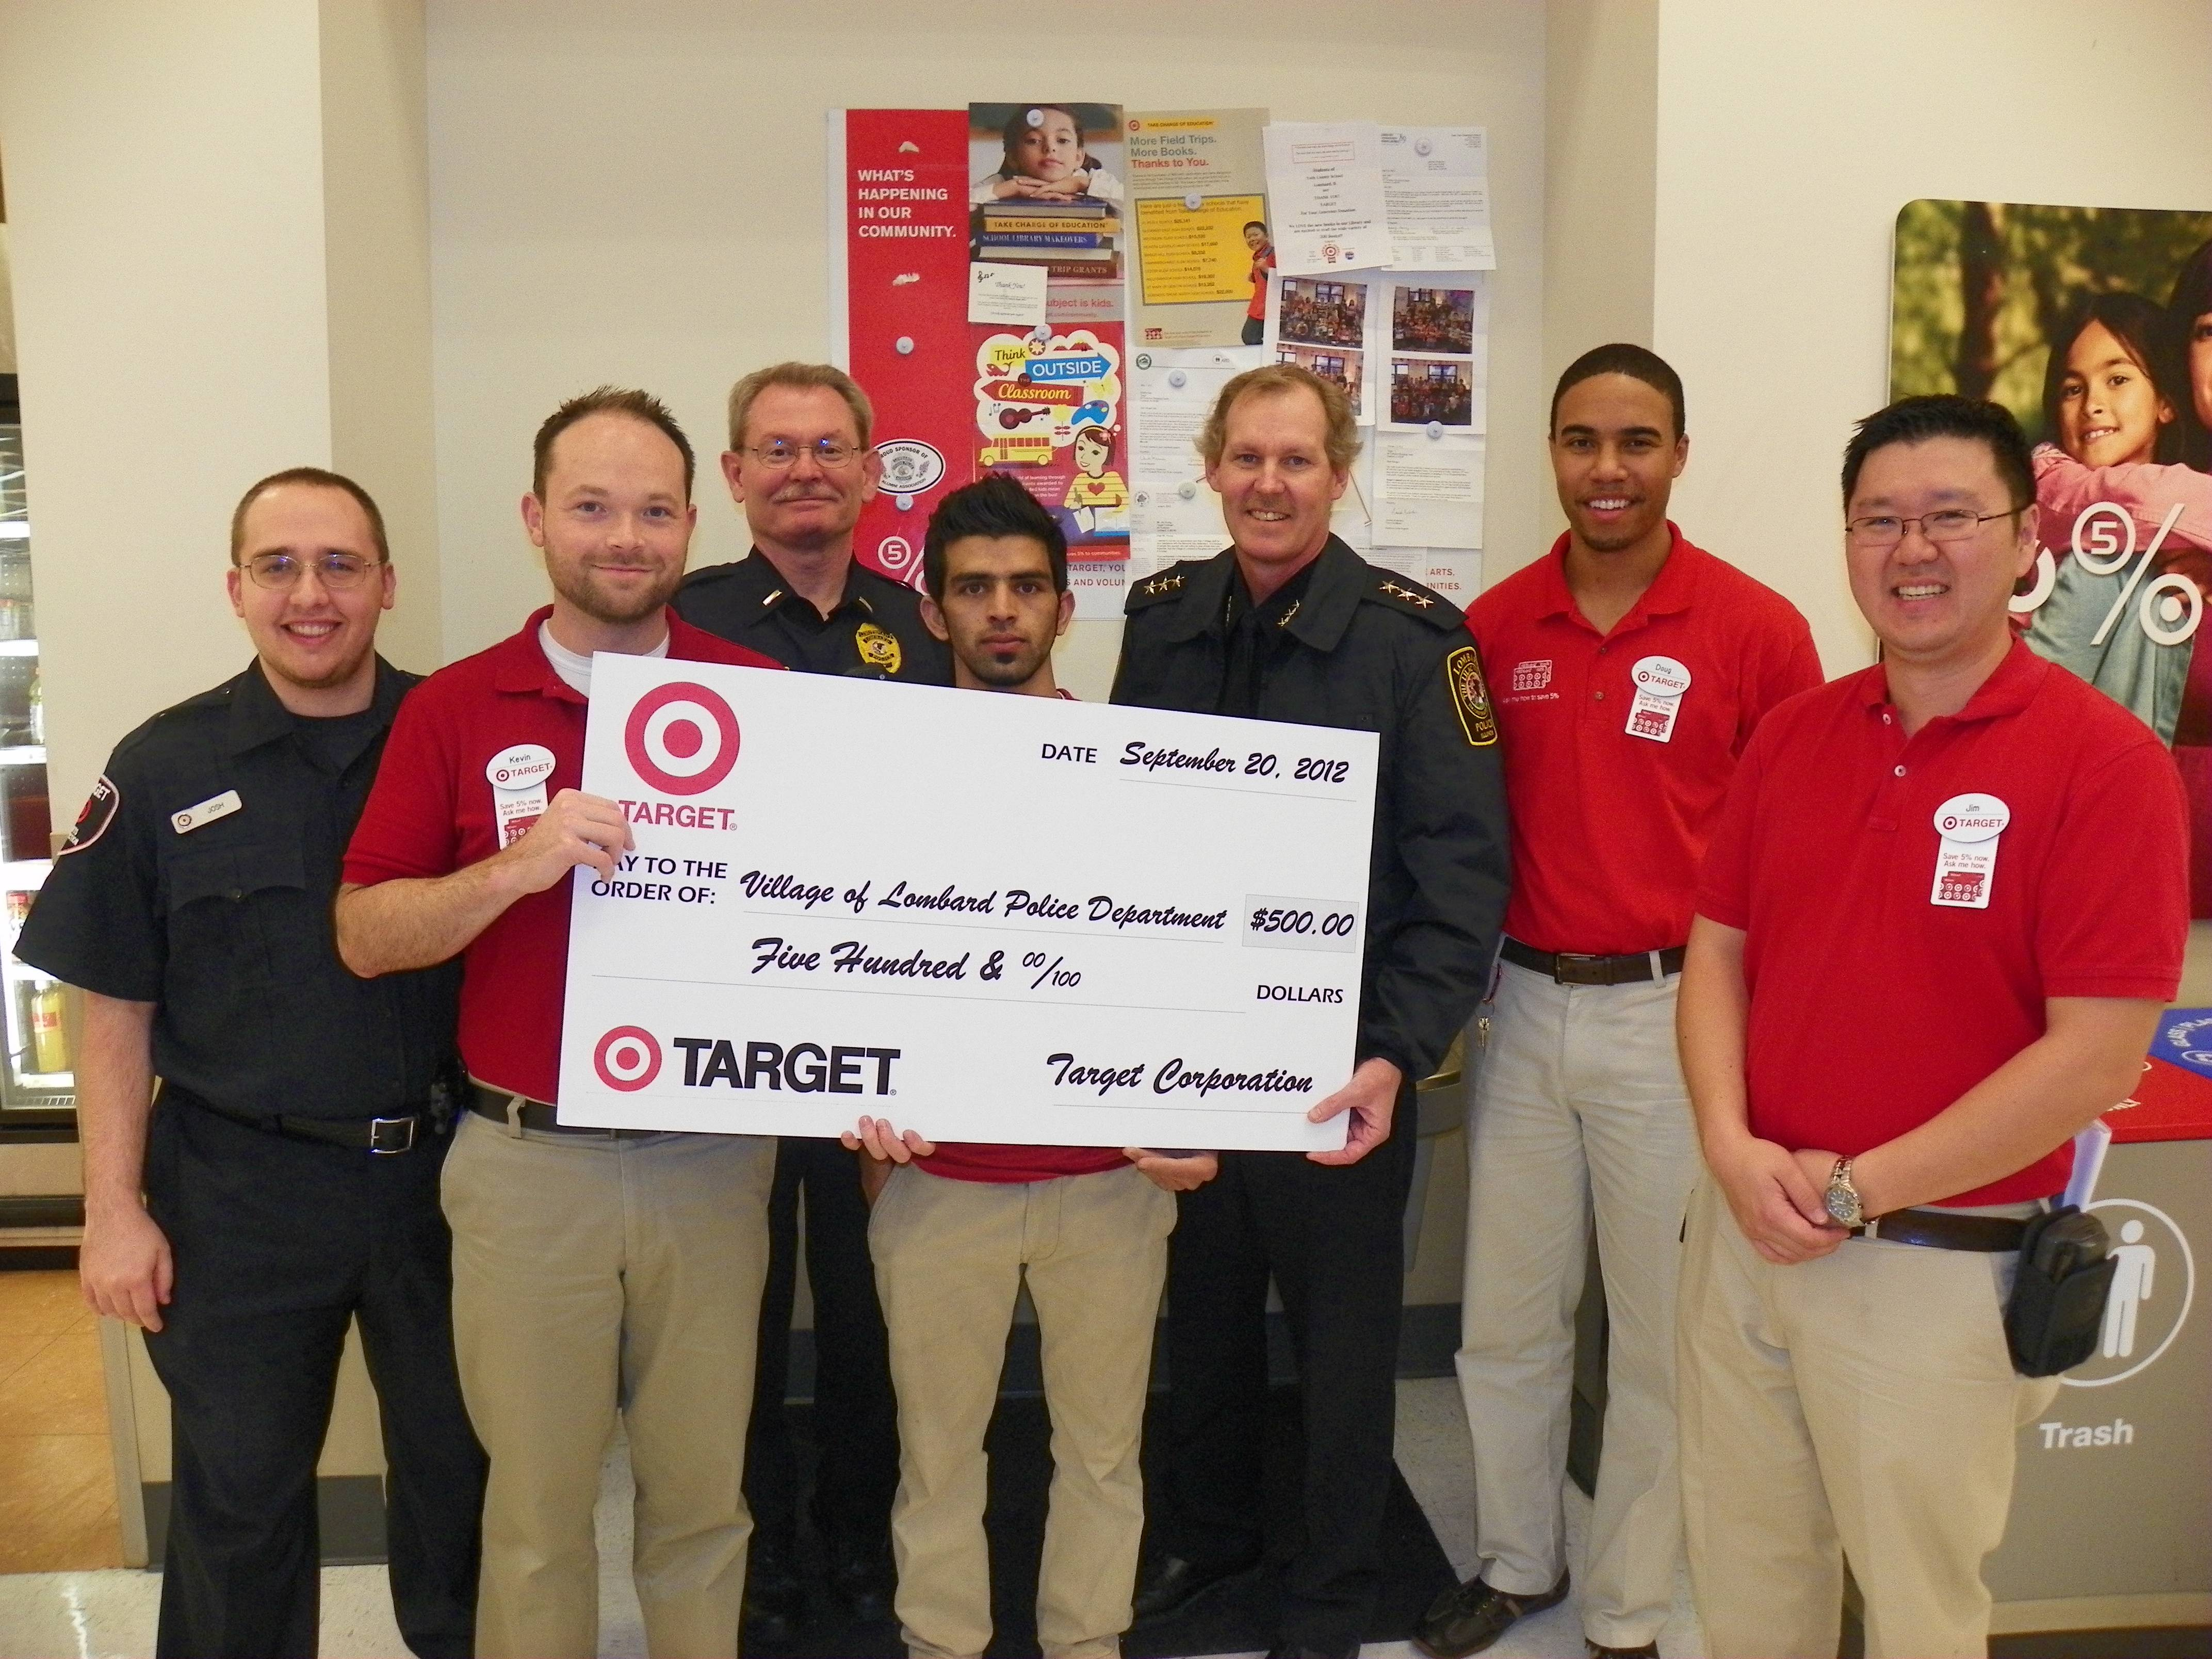 Receiving a check for $500 from Target Yorktown Lombard are: (left to right):  Josh Rod and Kevin Mislevy, Target; Lombard Police Lt. Scott Watkins; Zubair Ghiasi, Target; Lombard Police Chief Ray Byrne; Doug Lambert, Target and Jim Kim, Lombard Target Executive Team Leader.